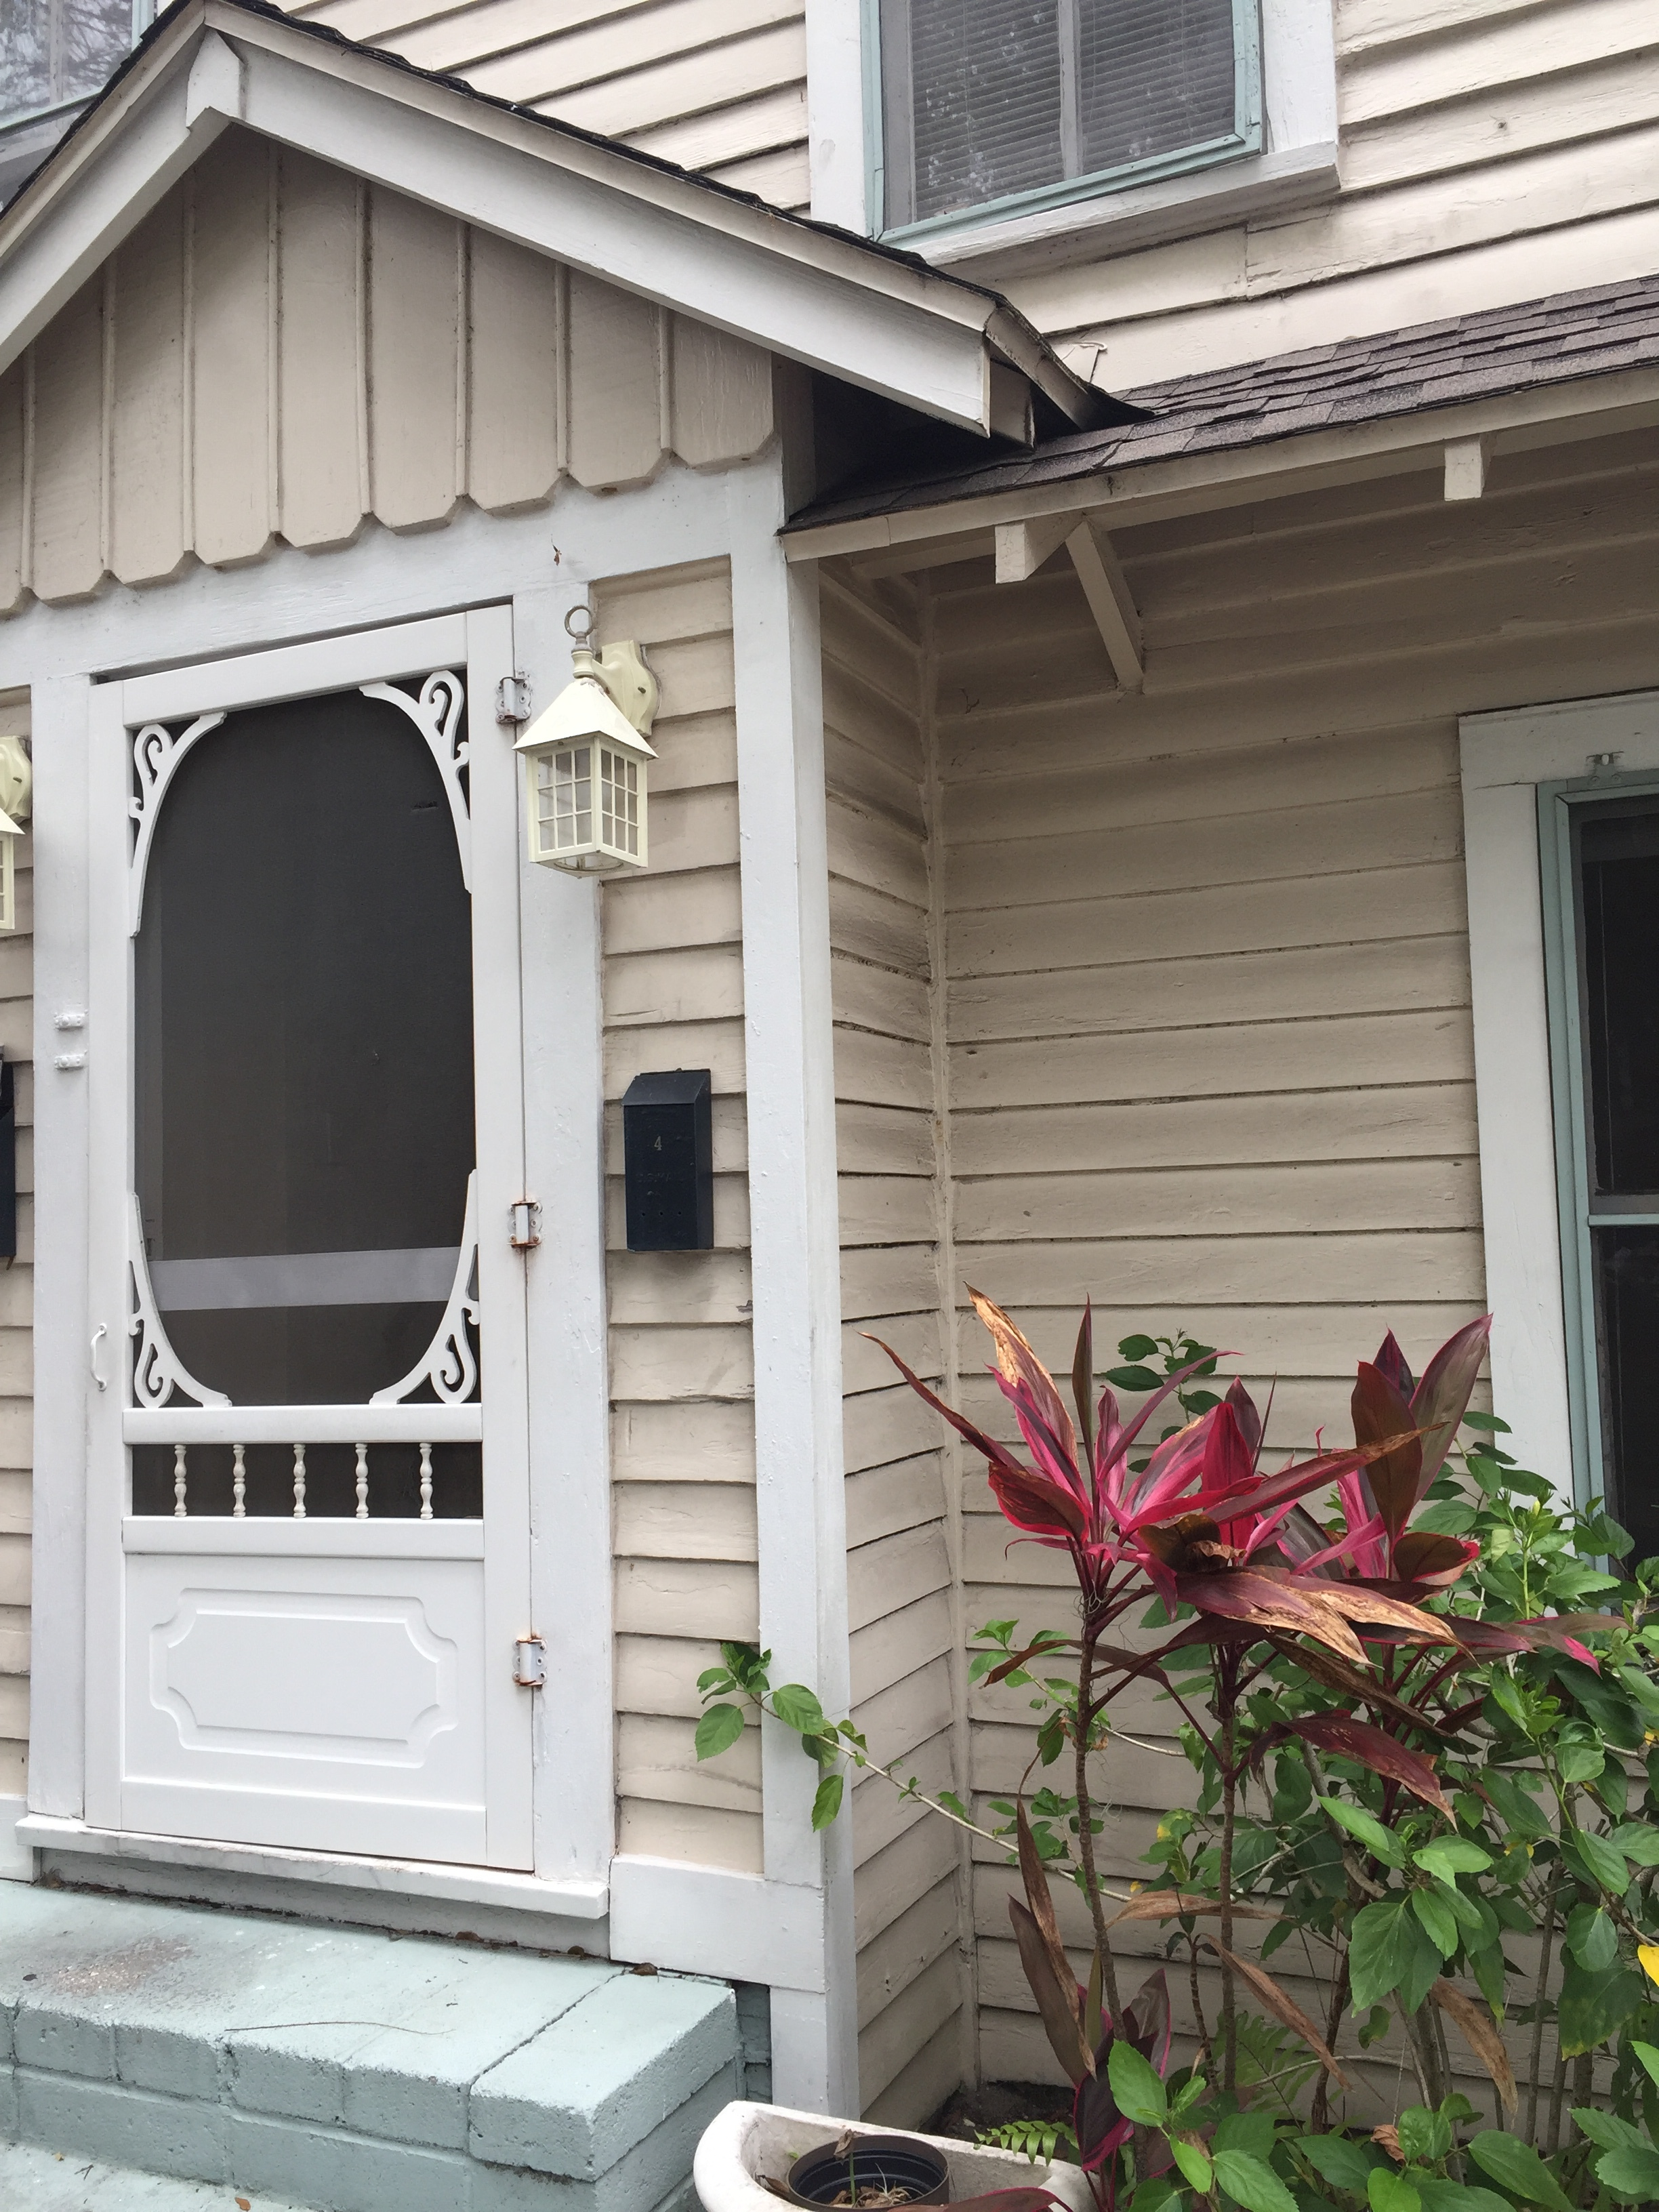 The Carriage House - 1 Bed / 1 Bath Available October 2018